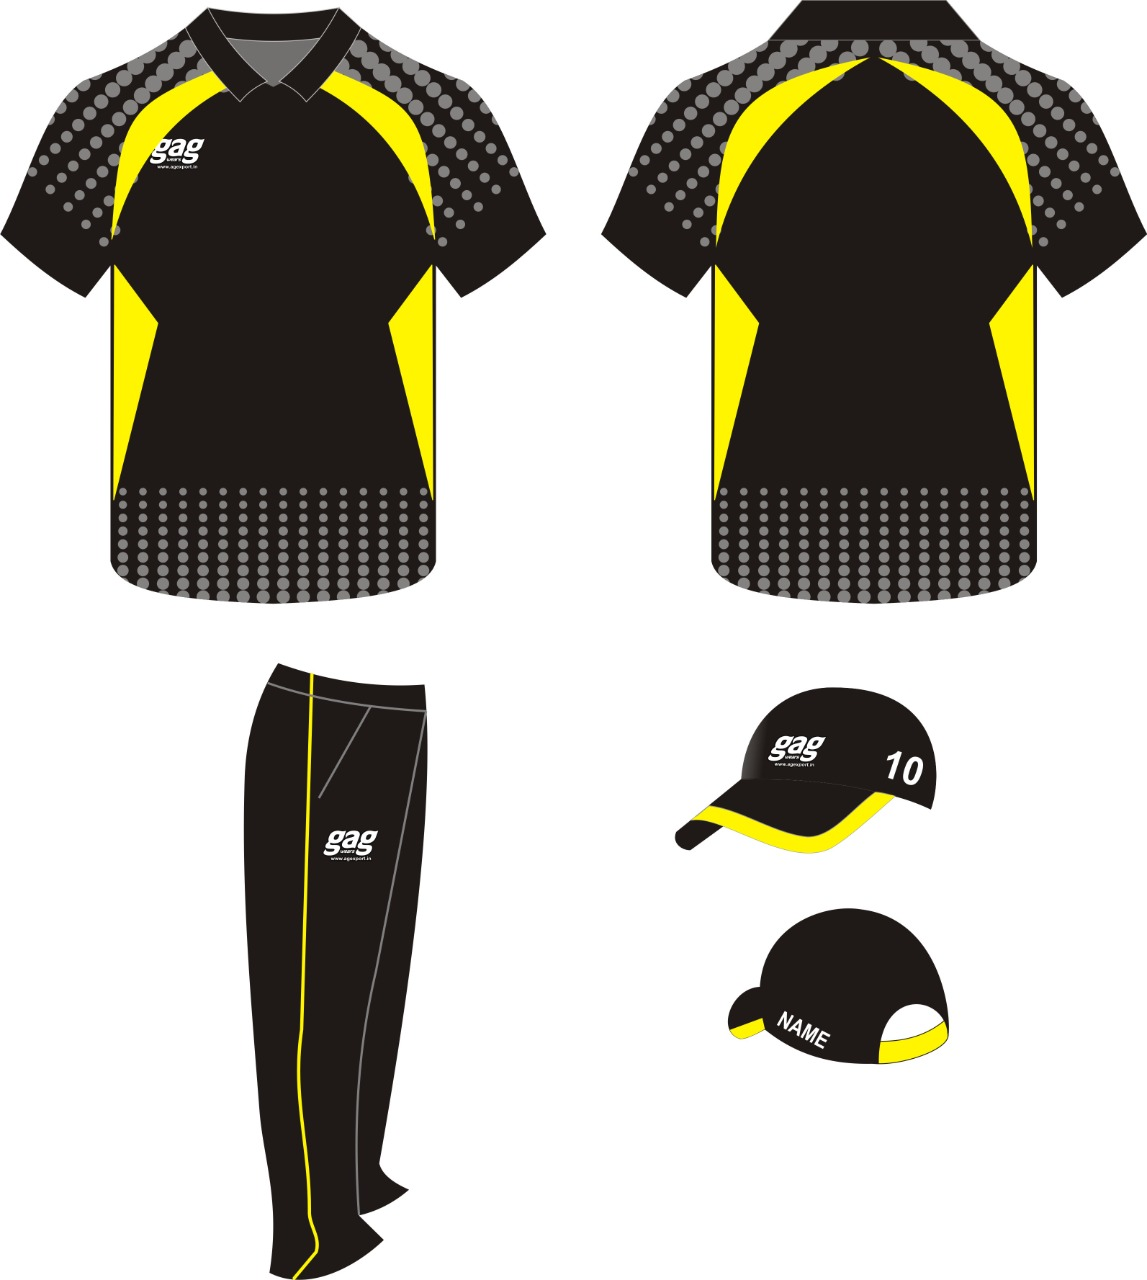 Indian Cricket Team Jersey Manufacturers in Jalandhar in Bahrain